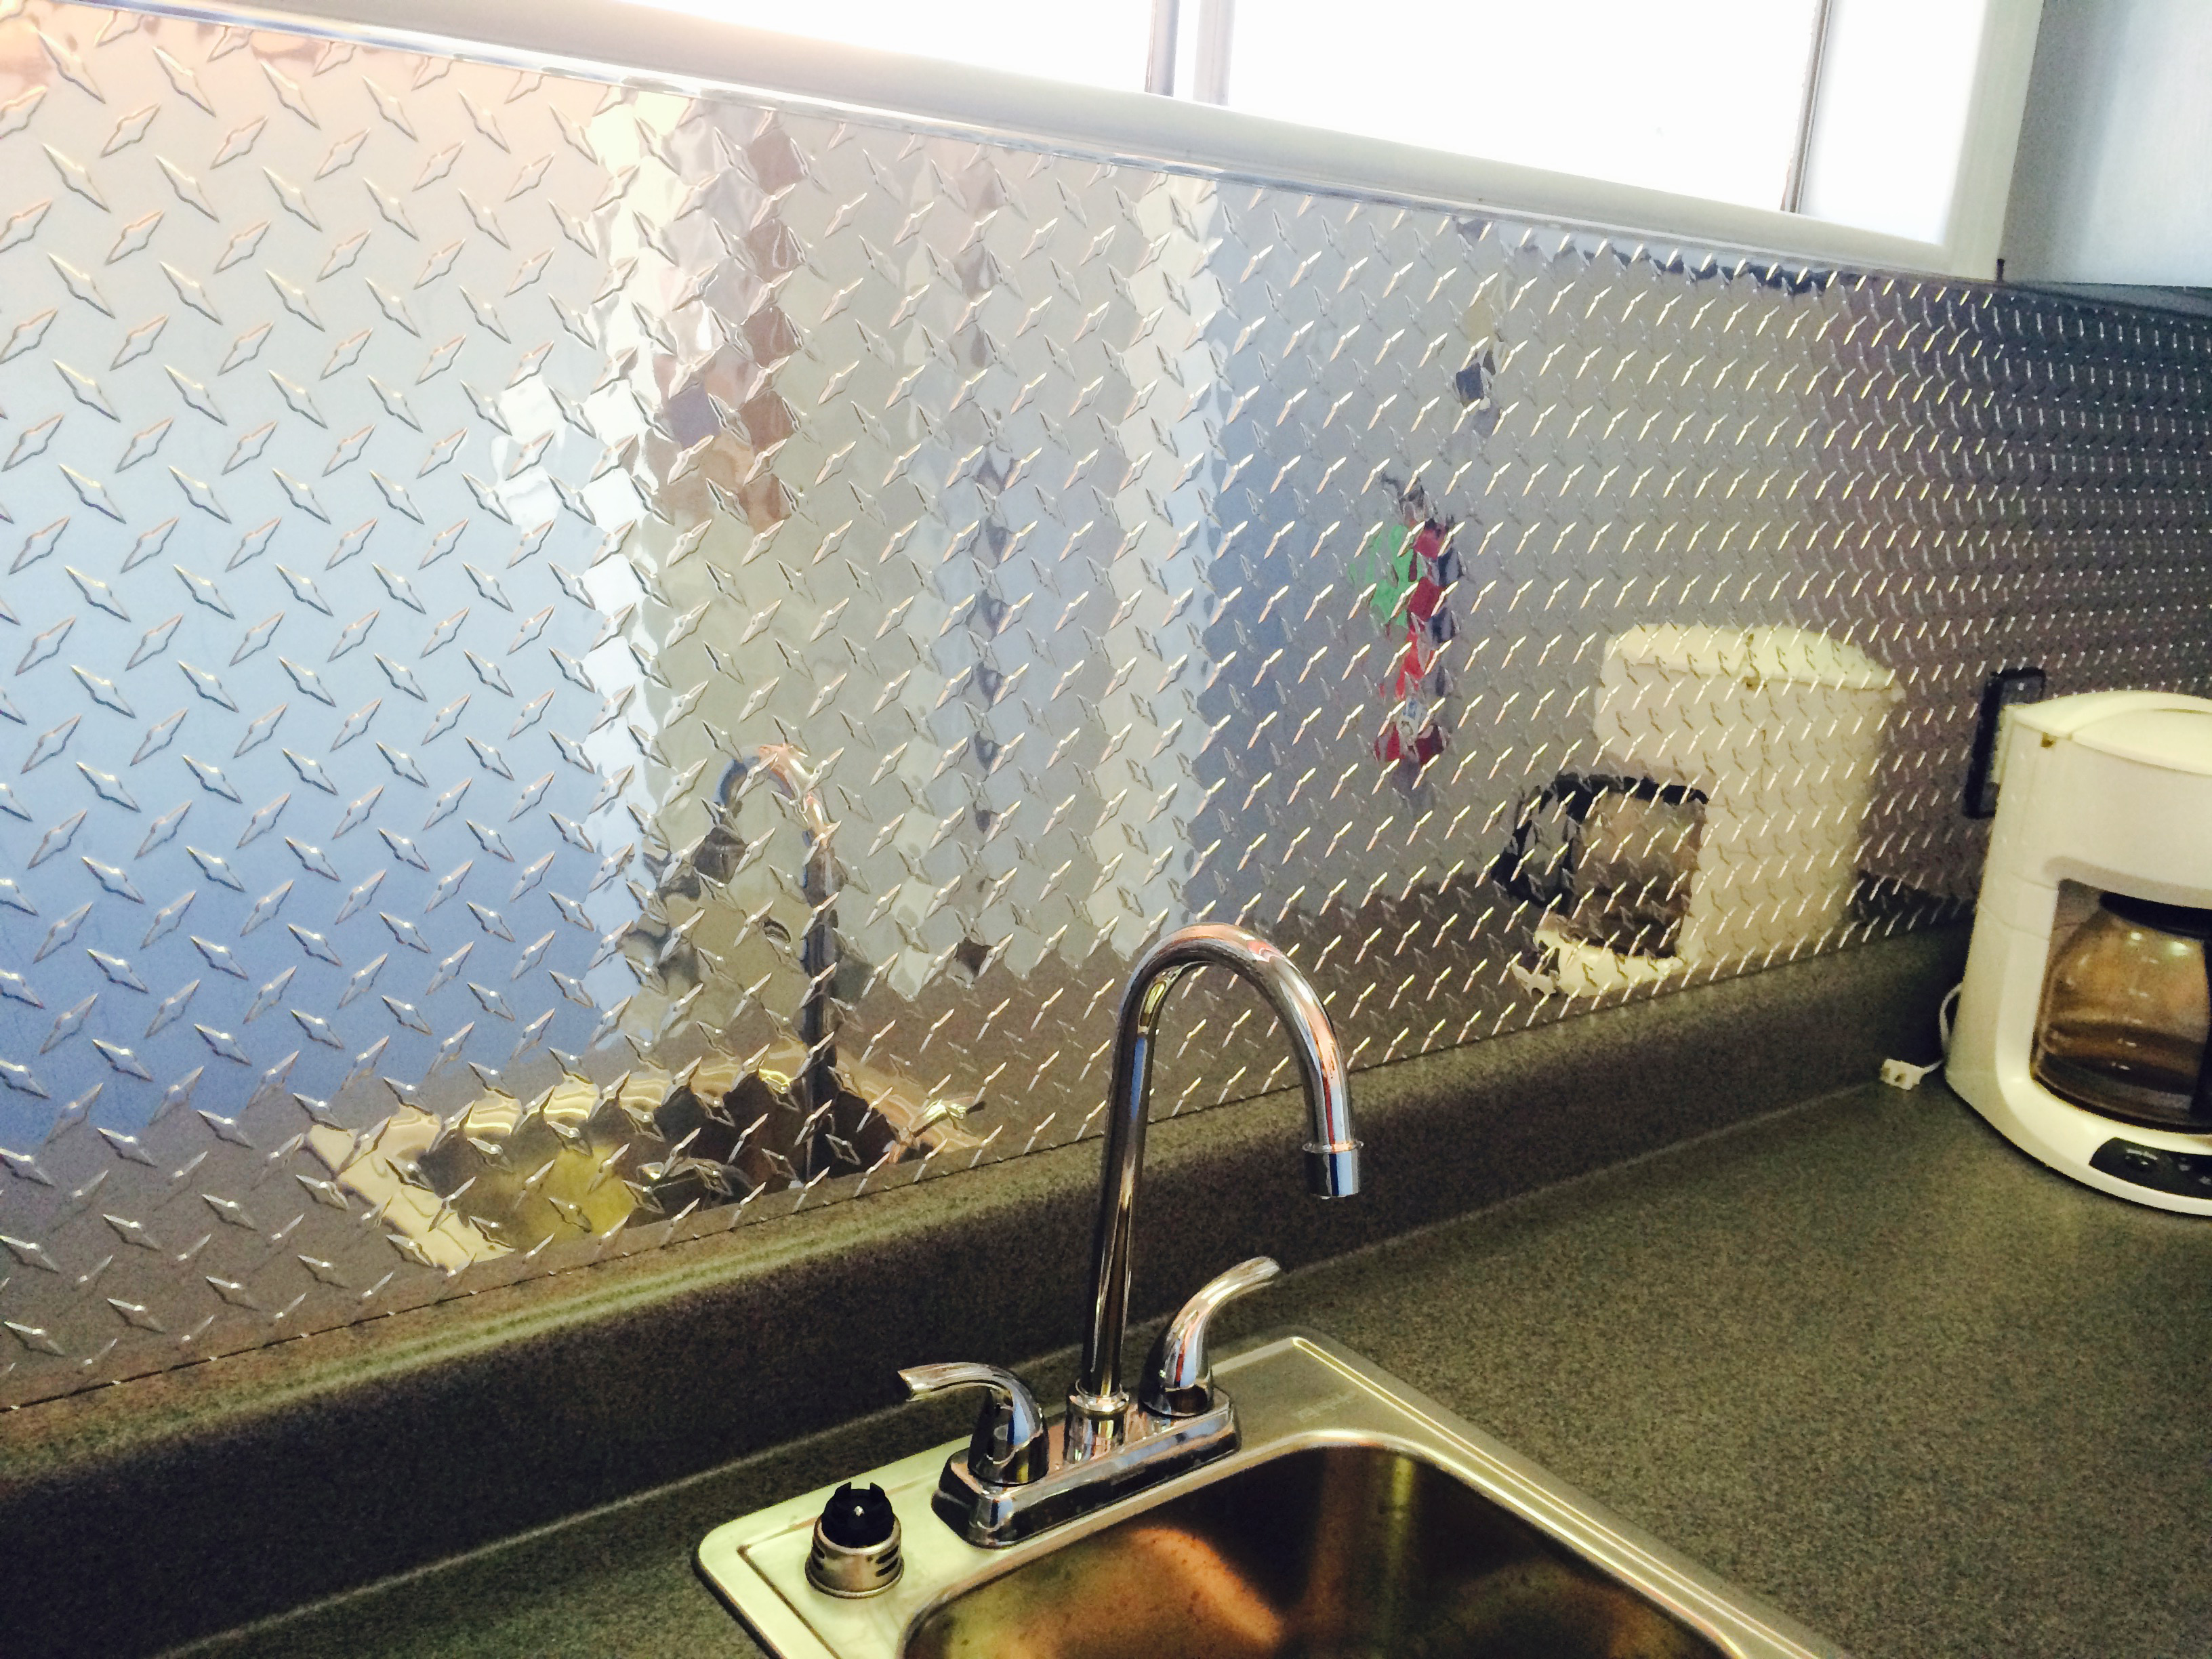 Diamond plate from CutsMetal will make your kitchen look brighter and bigger and will protect from mildew and mold